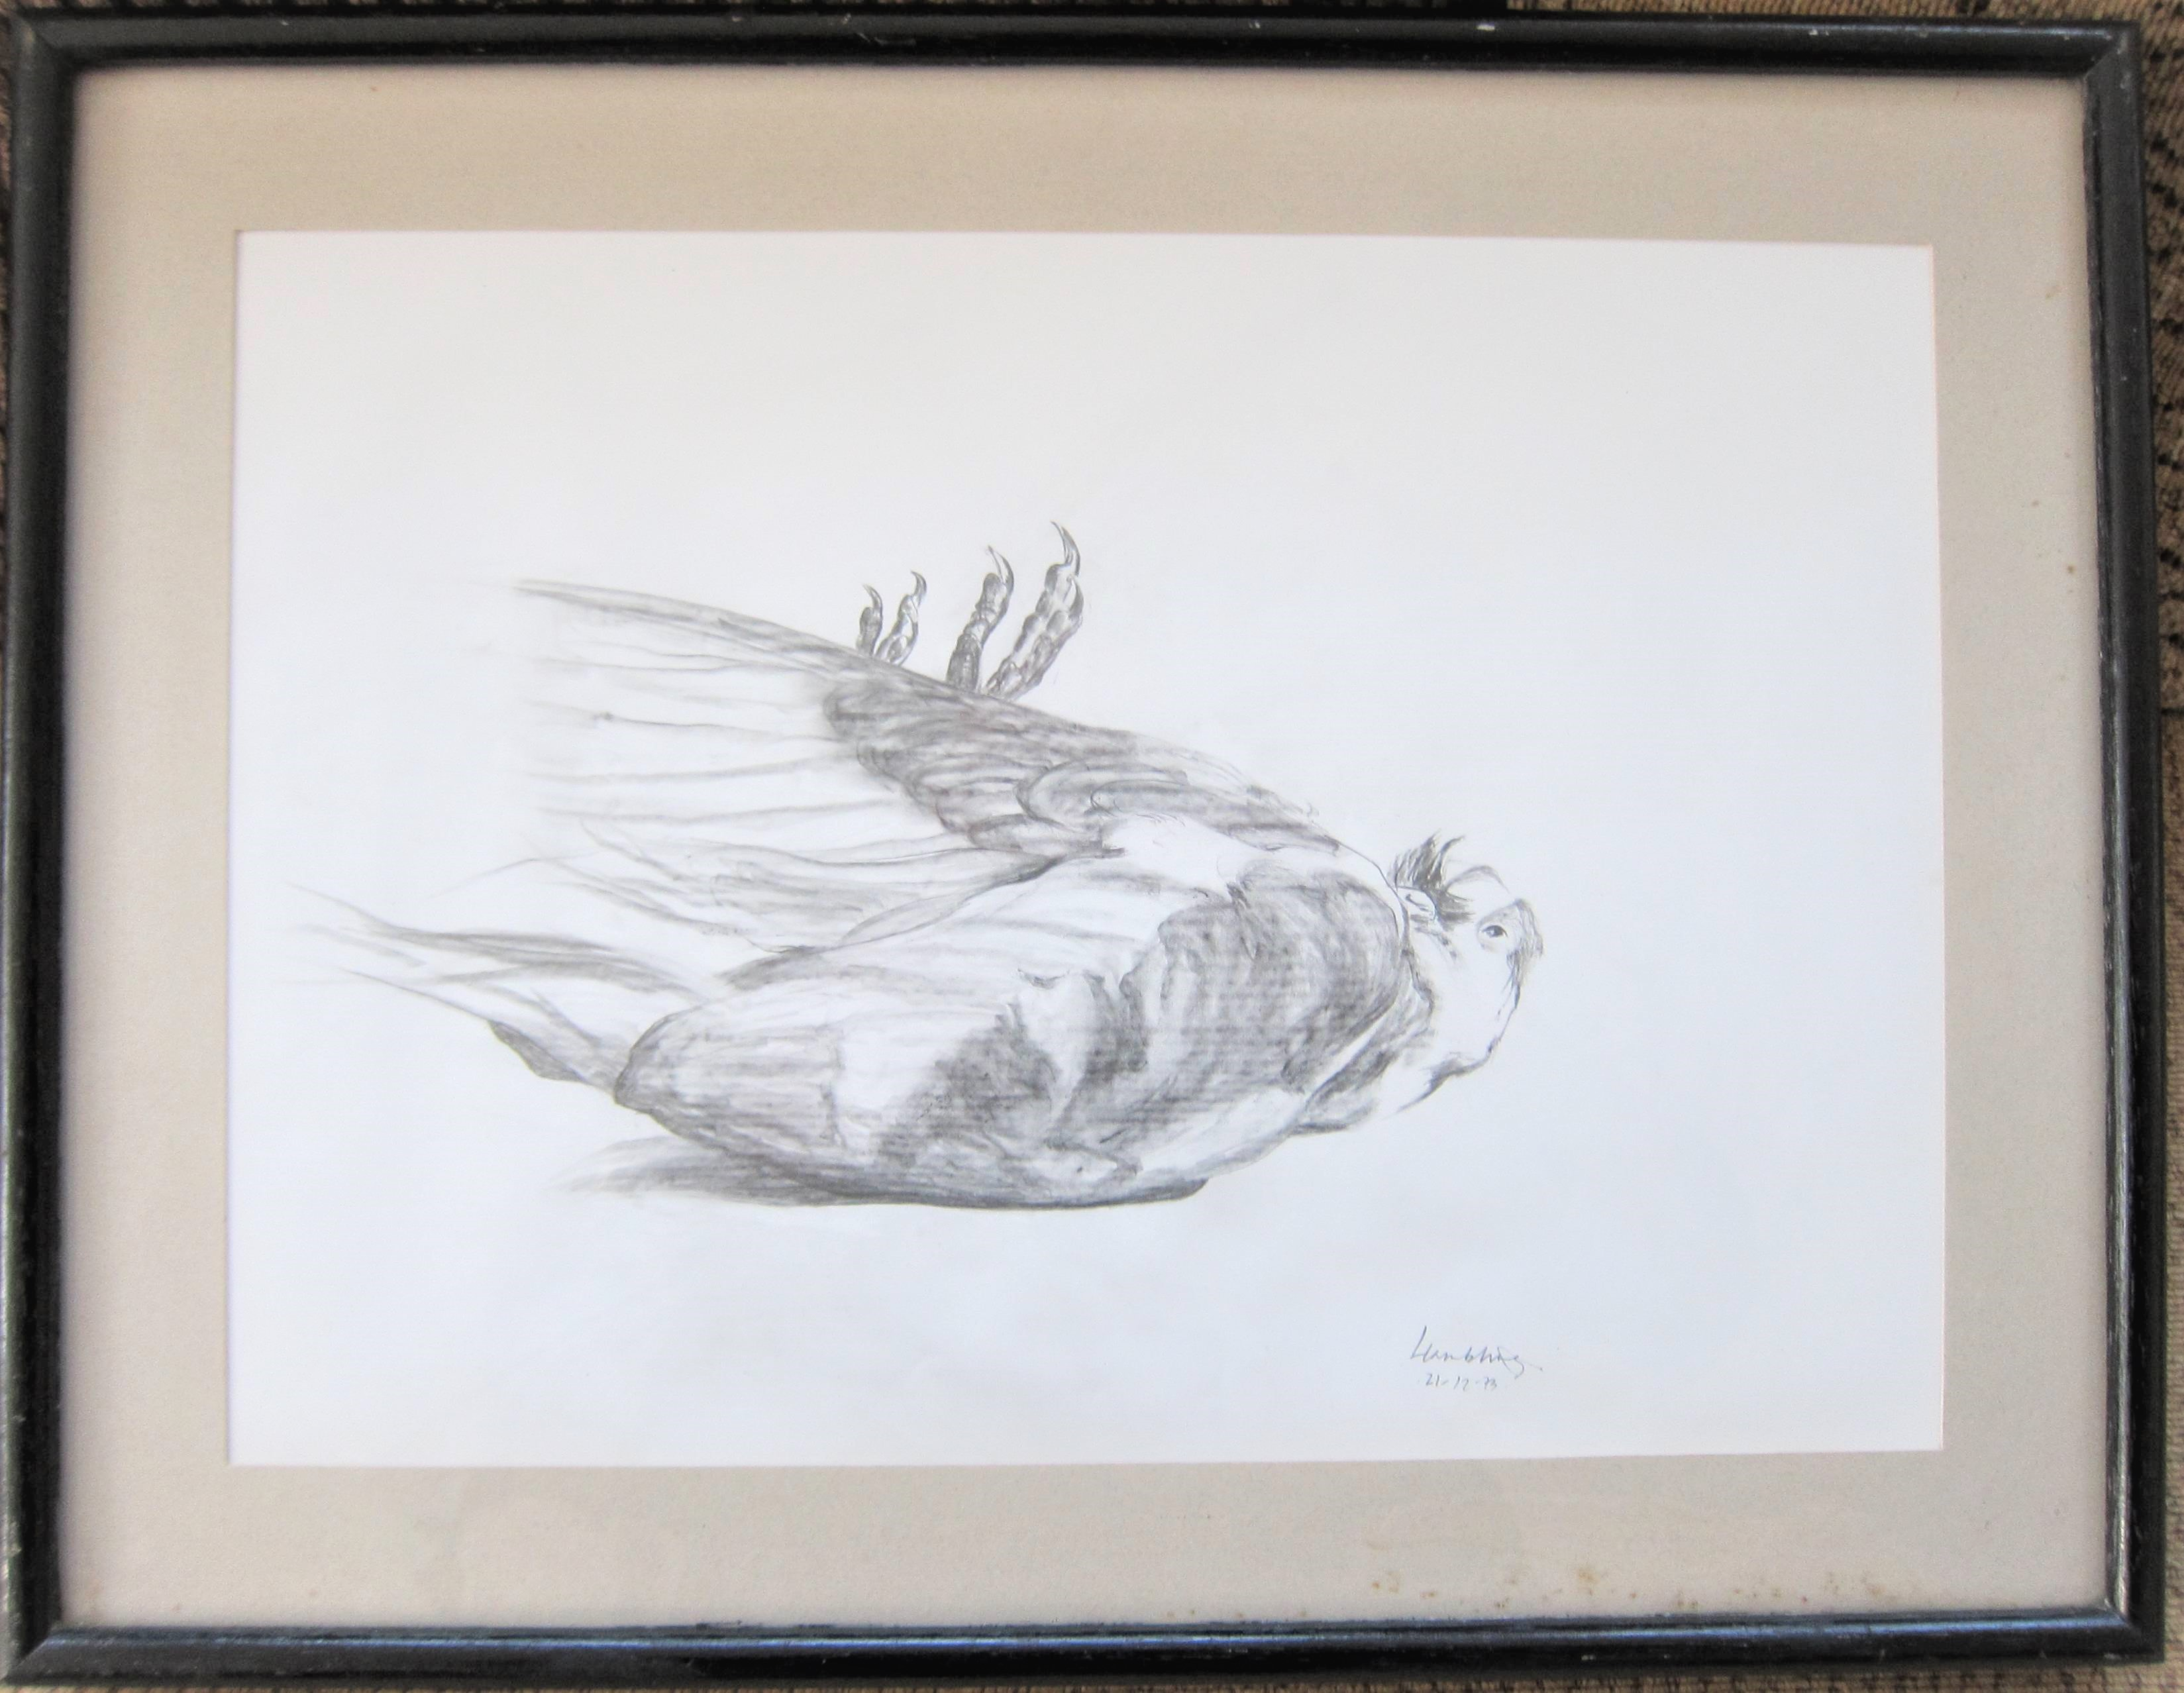 MAGGI HAMBLING C.B.E. [1945 - ]. Pigeon, Suffolk, 1973. pencil on paper; signed and dated in pencil. - Image 2 of 2